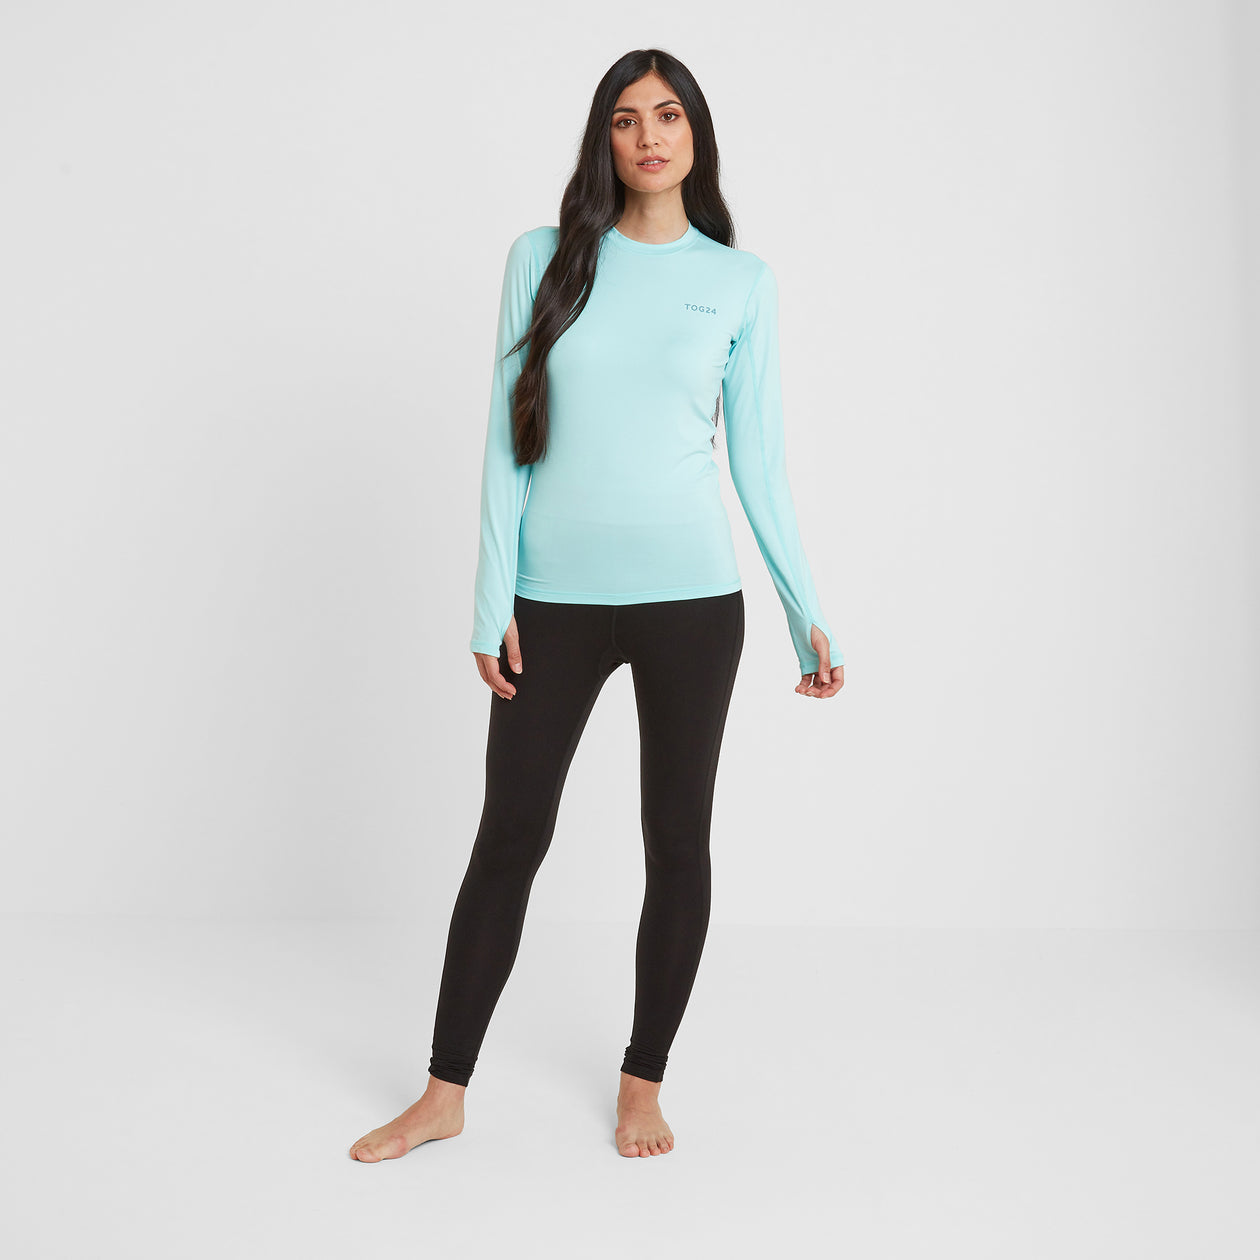 Snowdon Womens Thermal Crew Neck - Mint Blue image 4